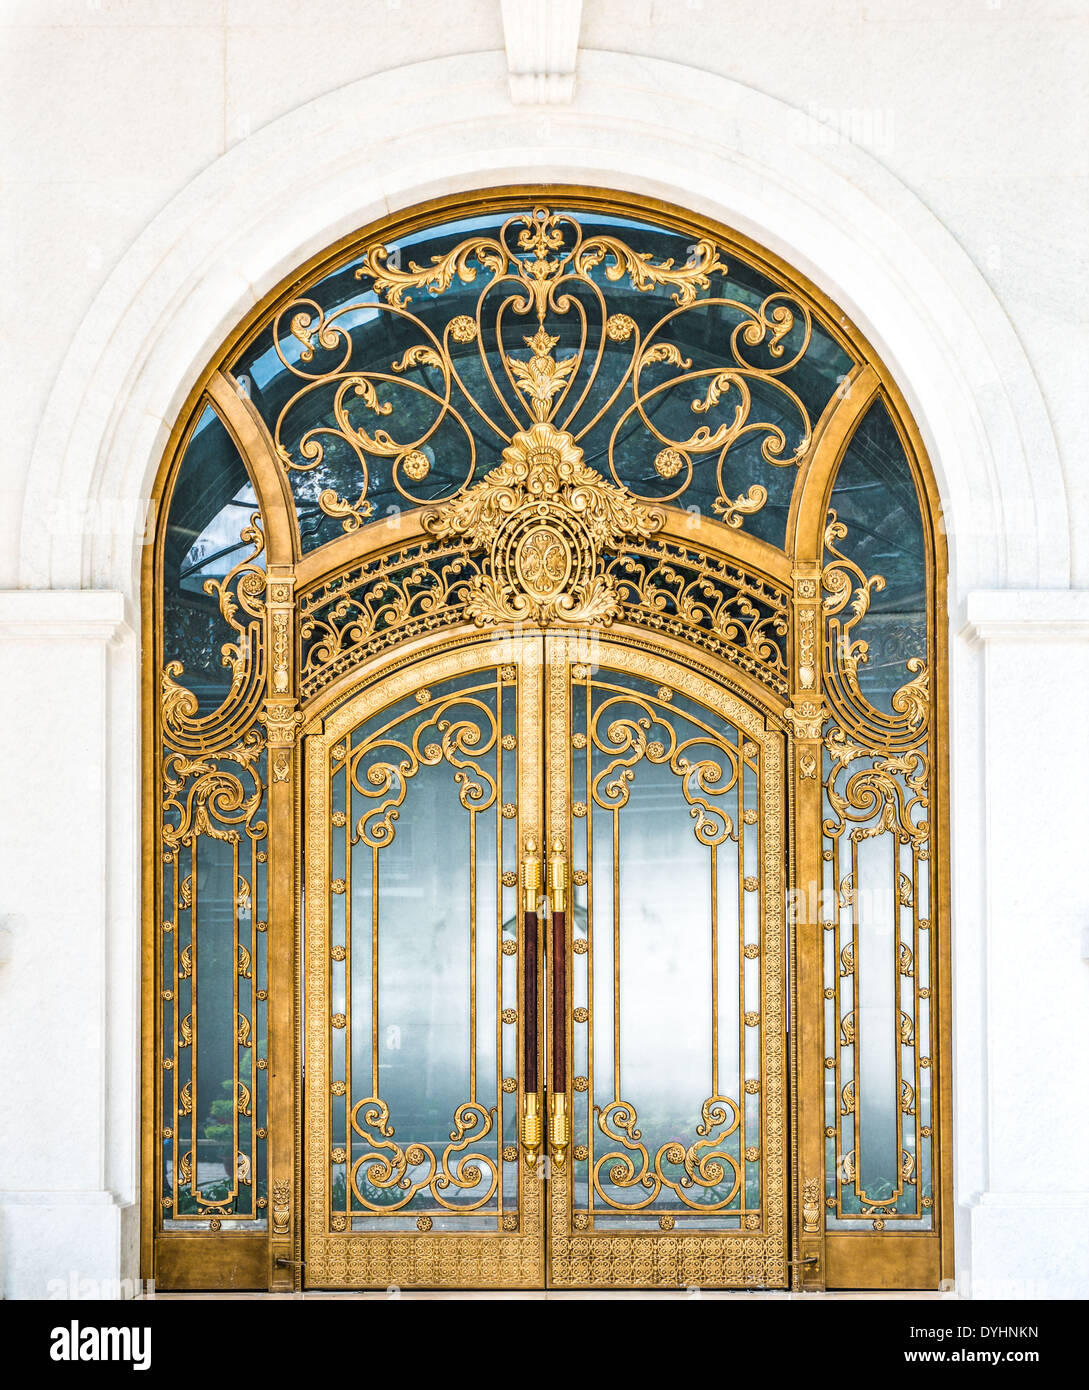 Beautiful Arched Doorway Door Made Of Wood Gold And Glass Stock